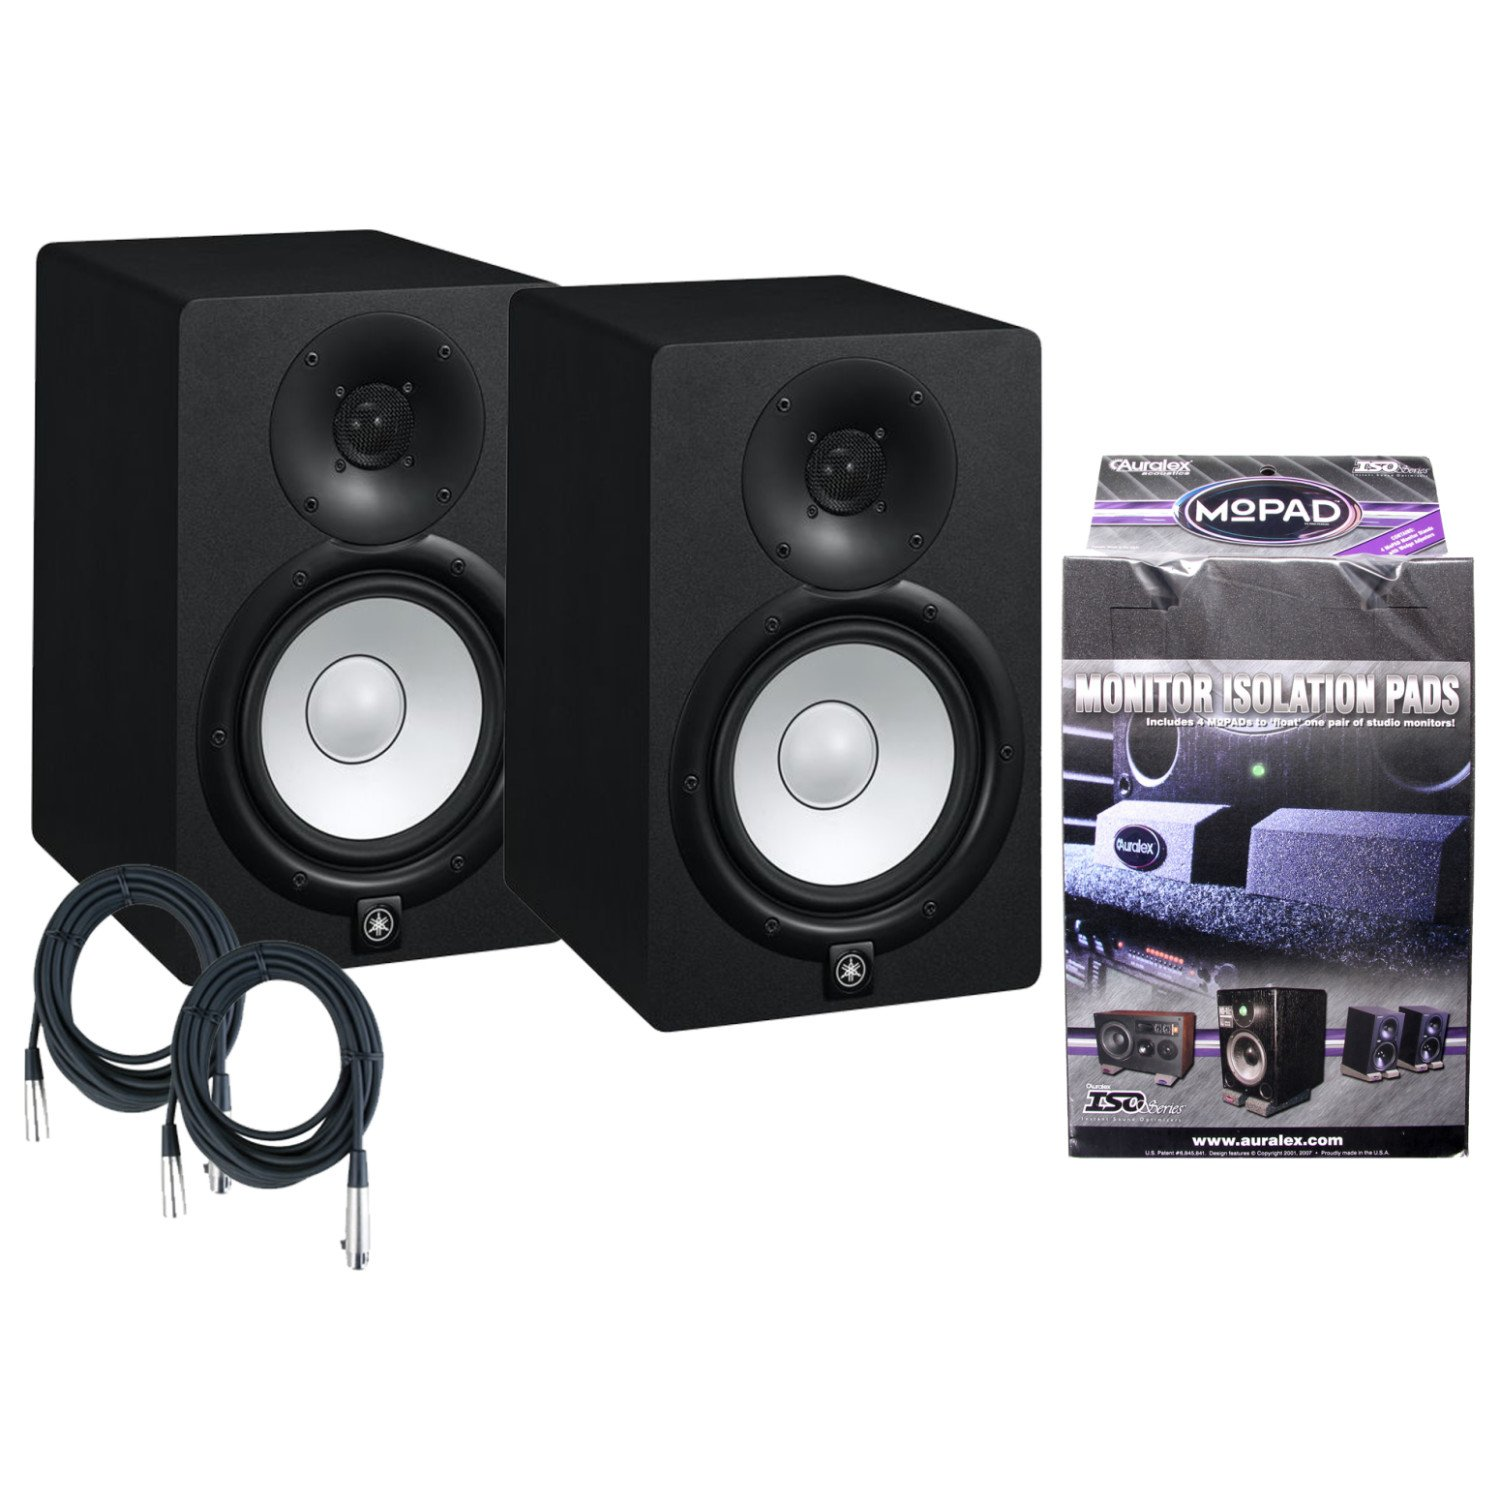 Yamaha HS7 95W Active Studio Monitor W/MoPads and Cables